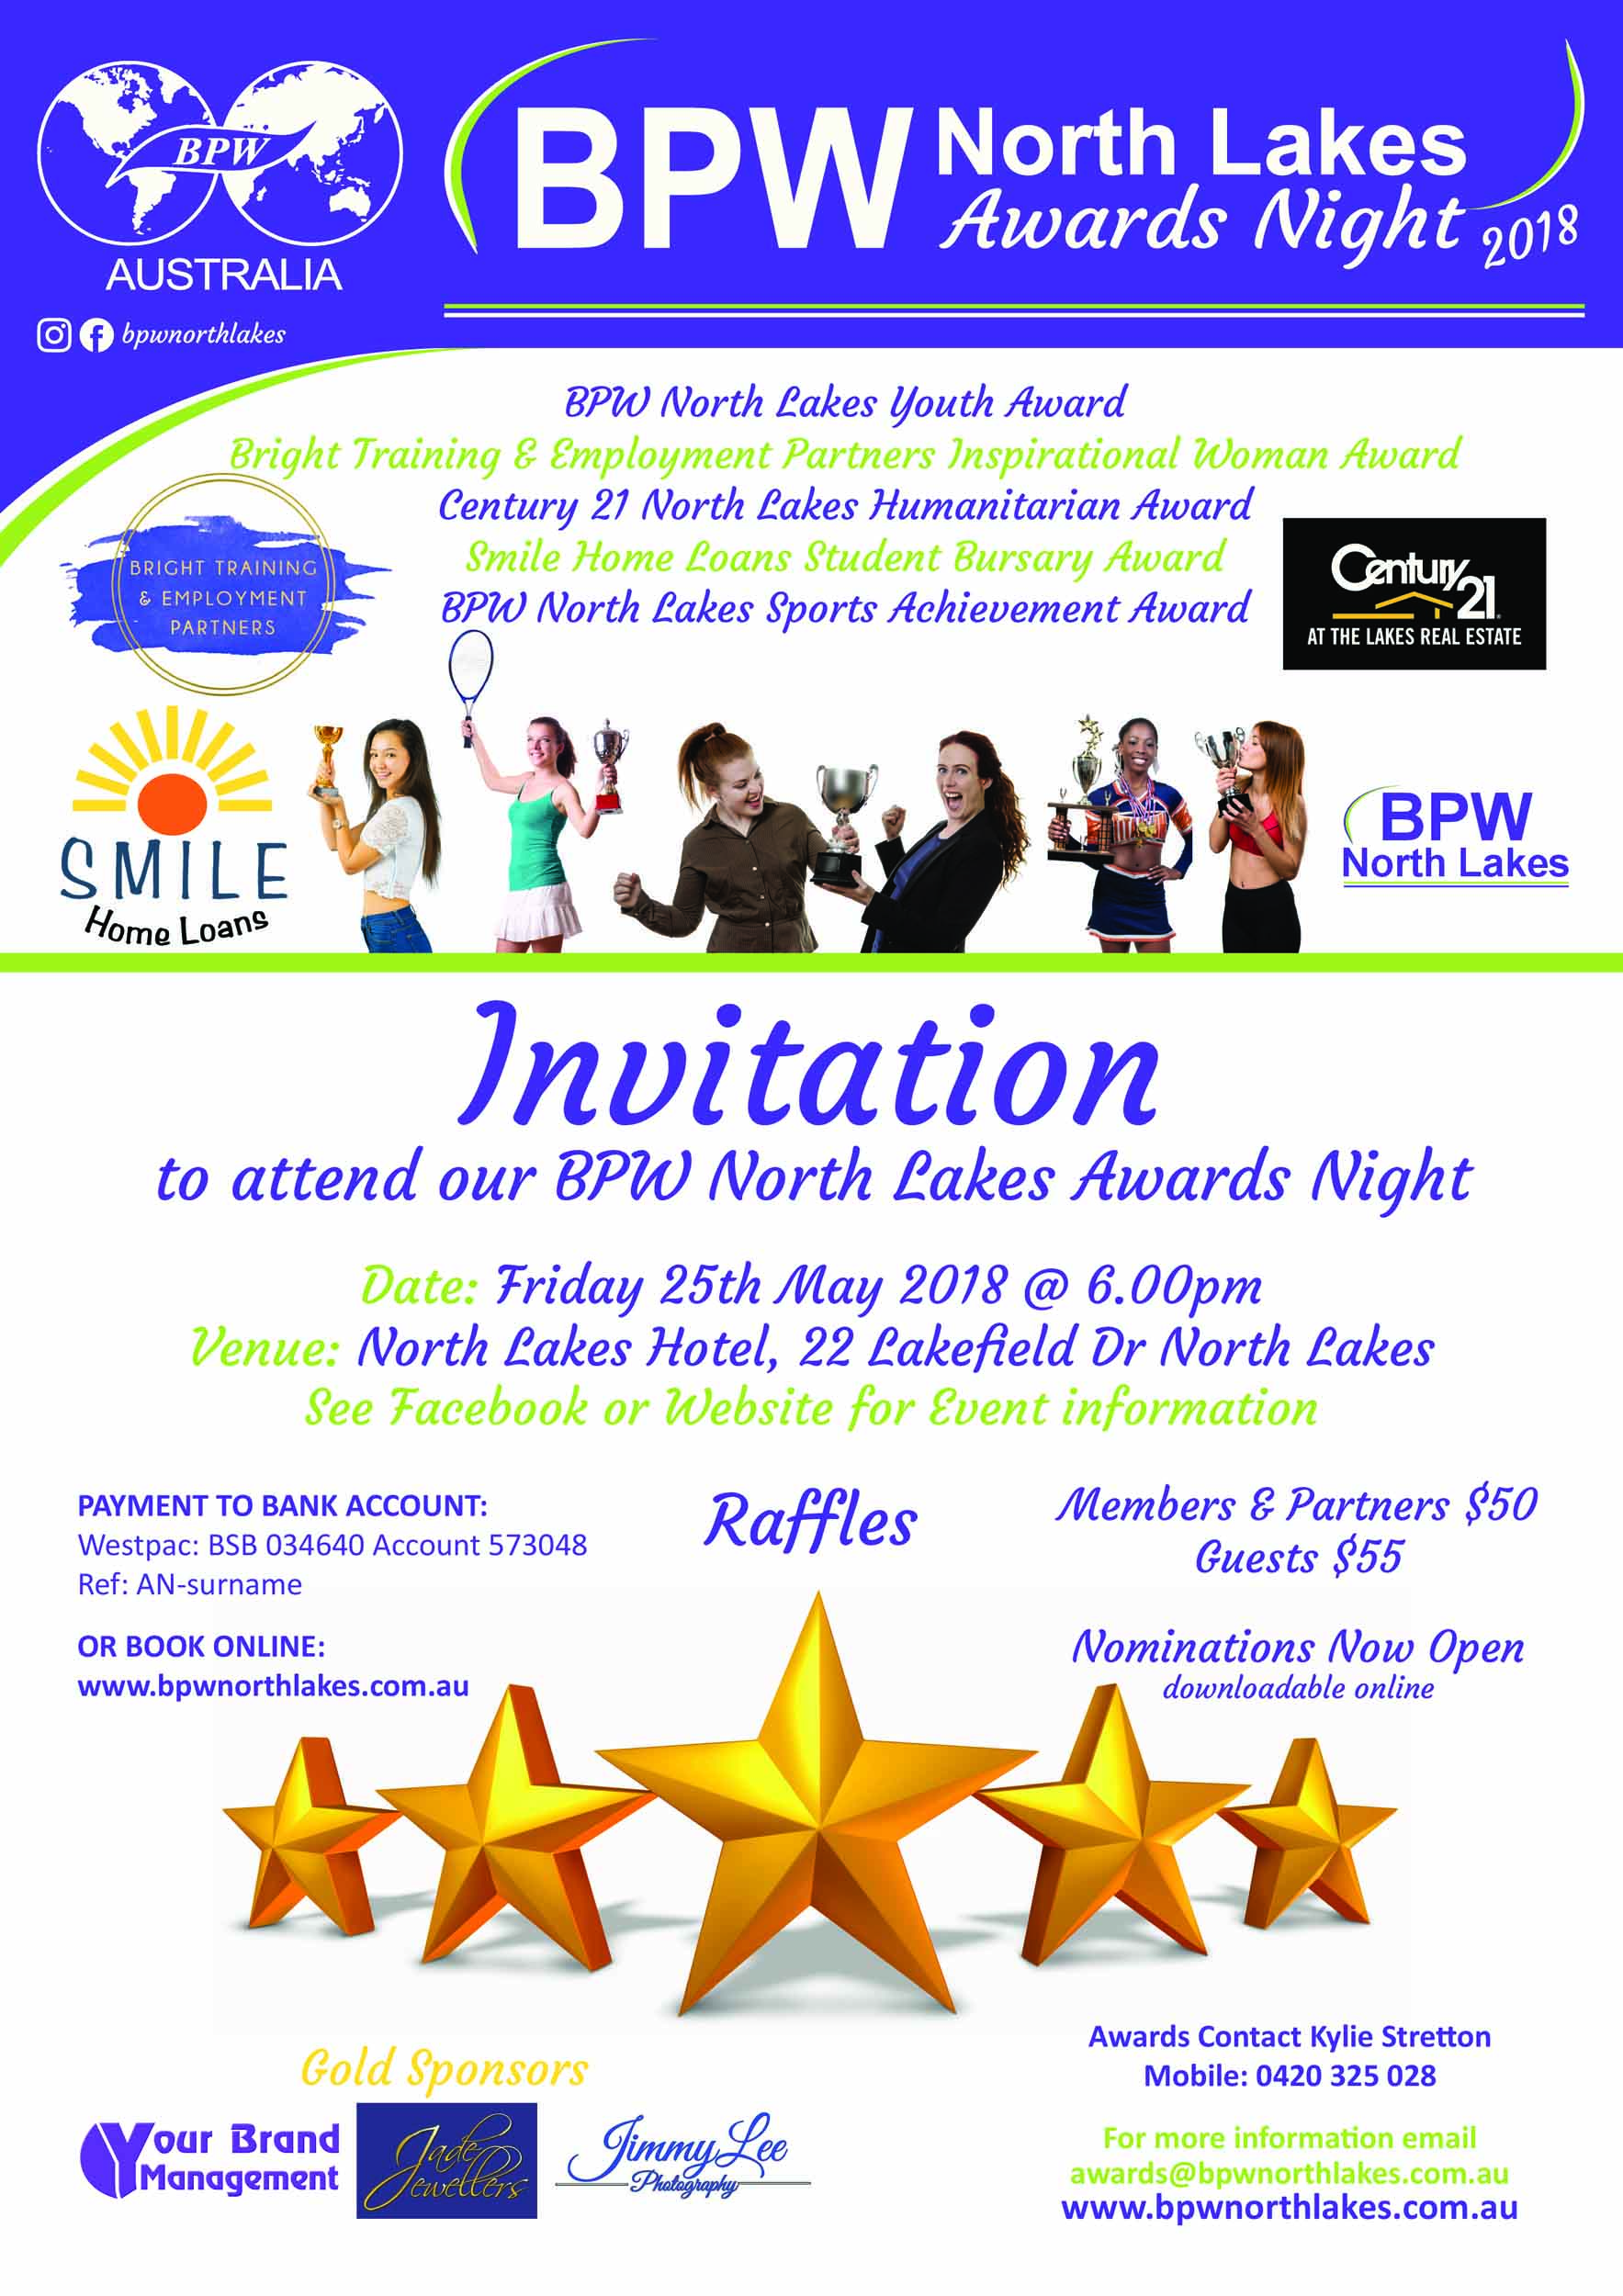 BPW North Lakes Awards Night small